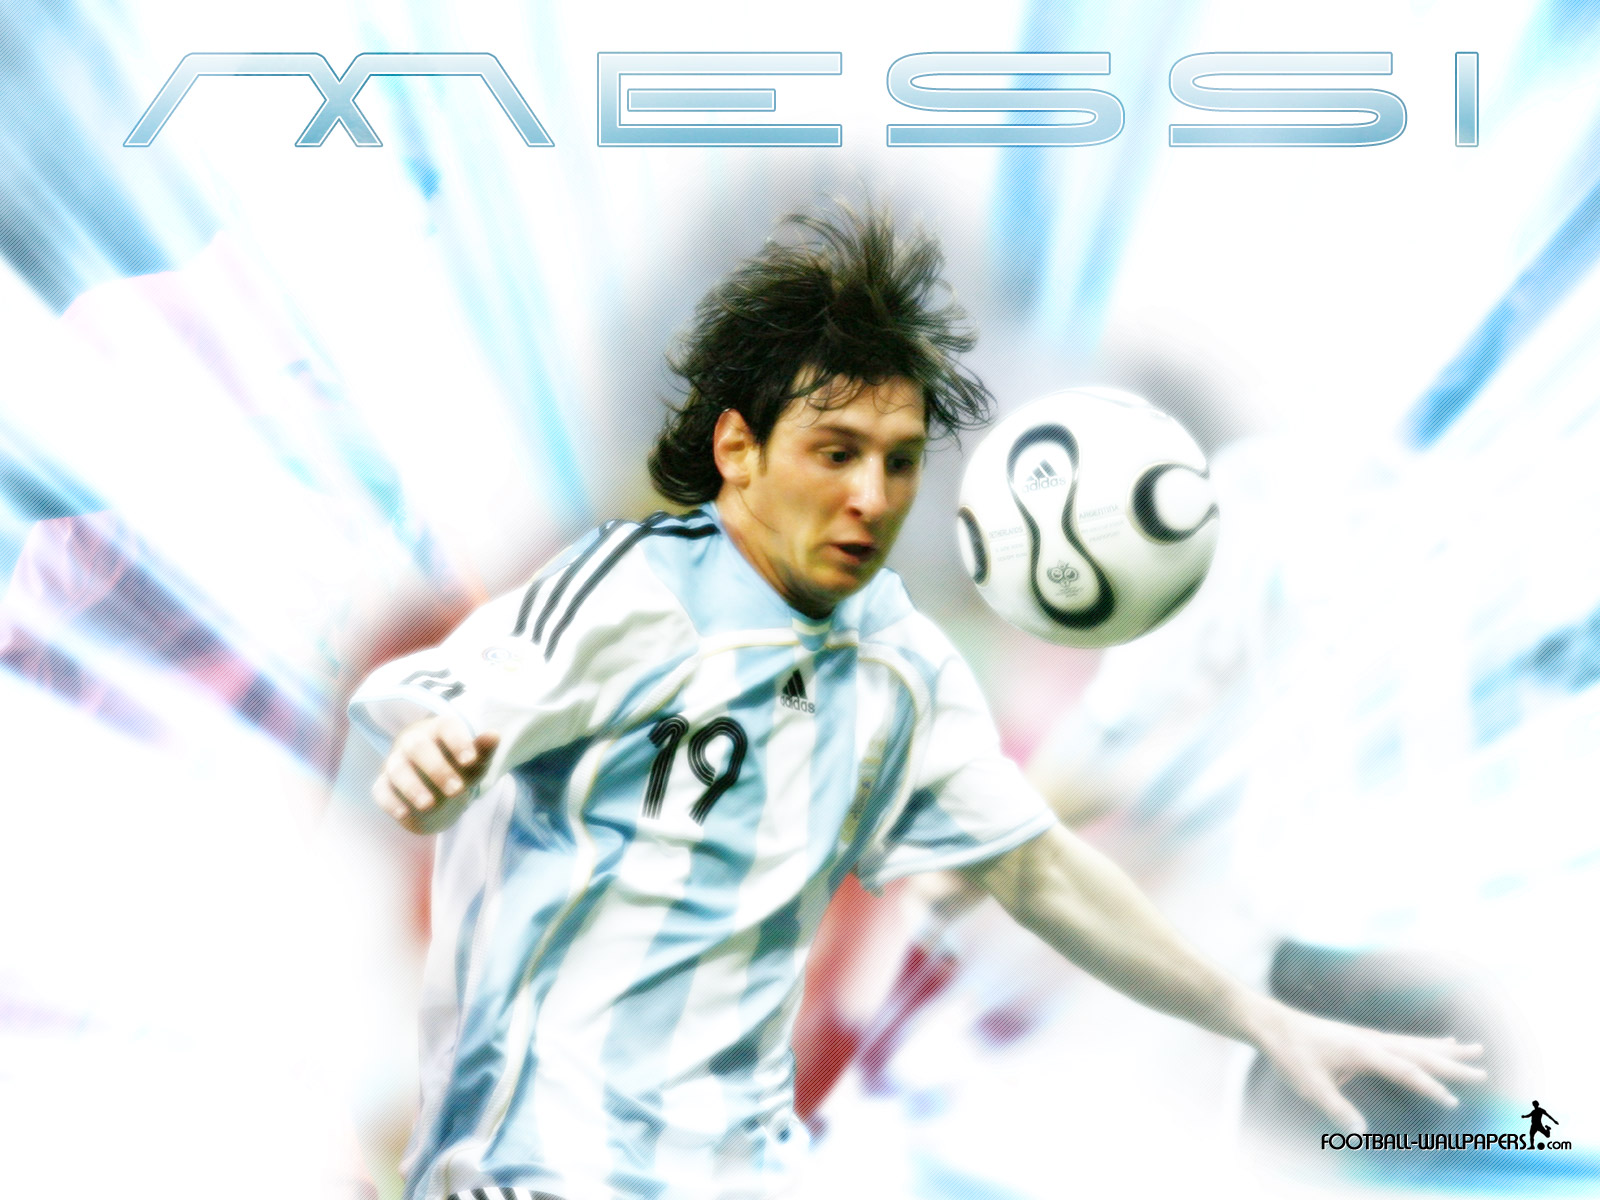 Lionel Messi Wallpaper 1 Football Wallpapers and Videos 1600x1200